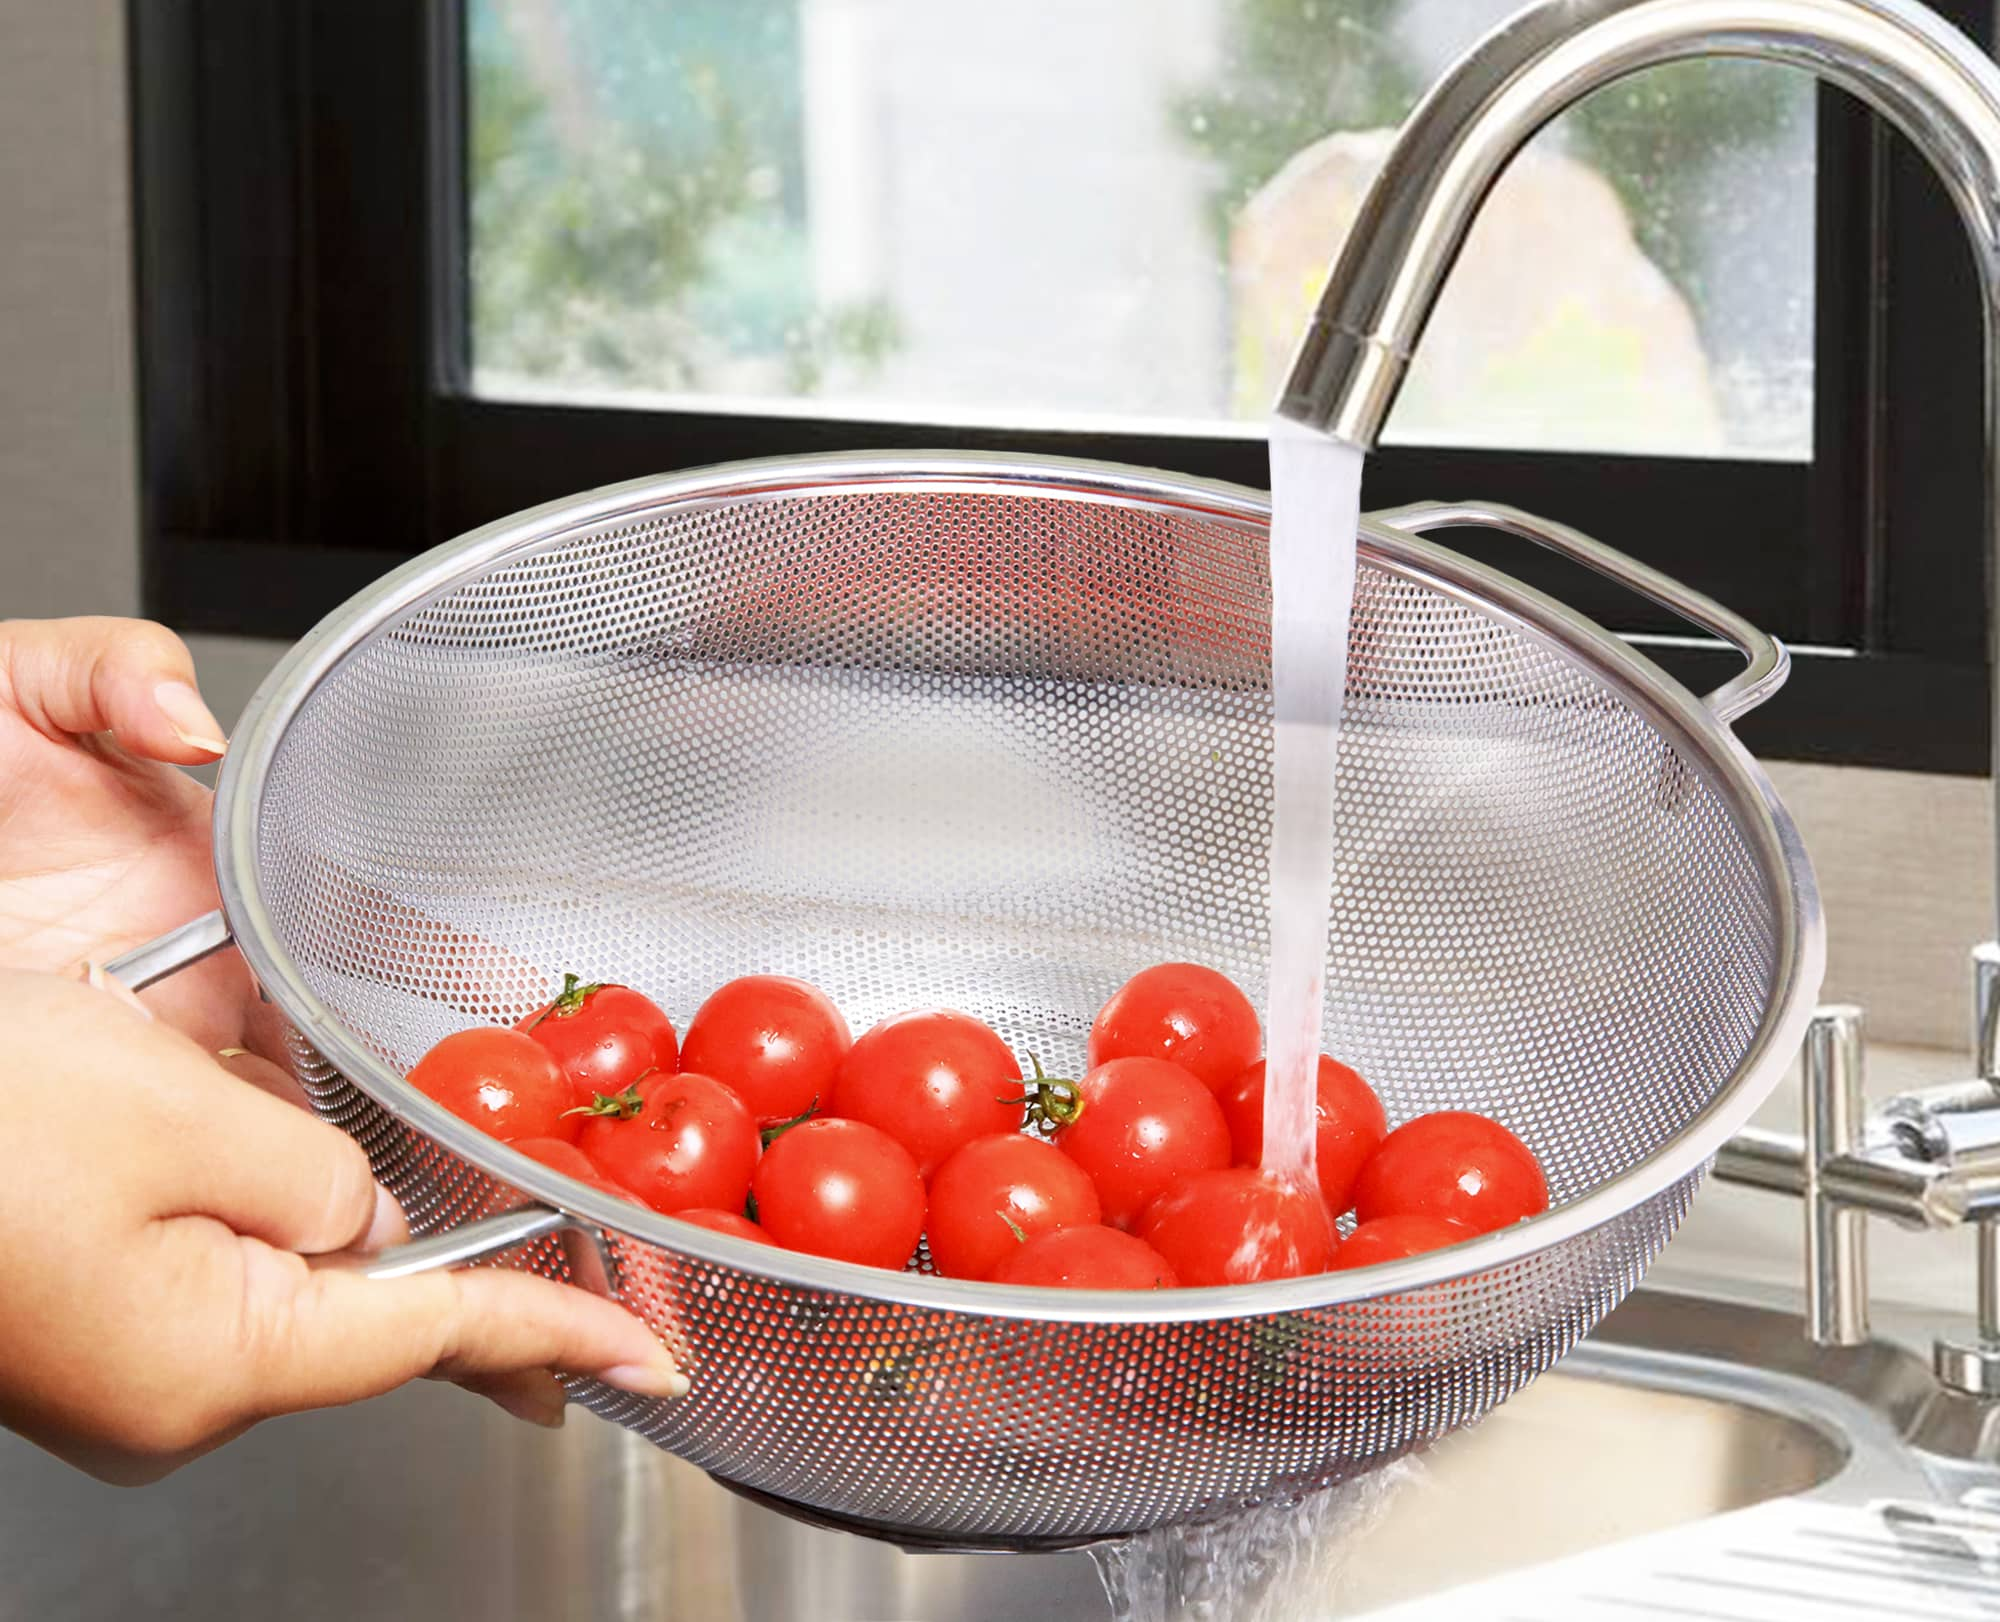 Water quickly drain when rising the tomatoes with Benchusch Premium Stainless Steel Colander